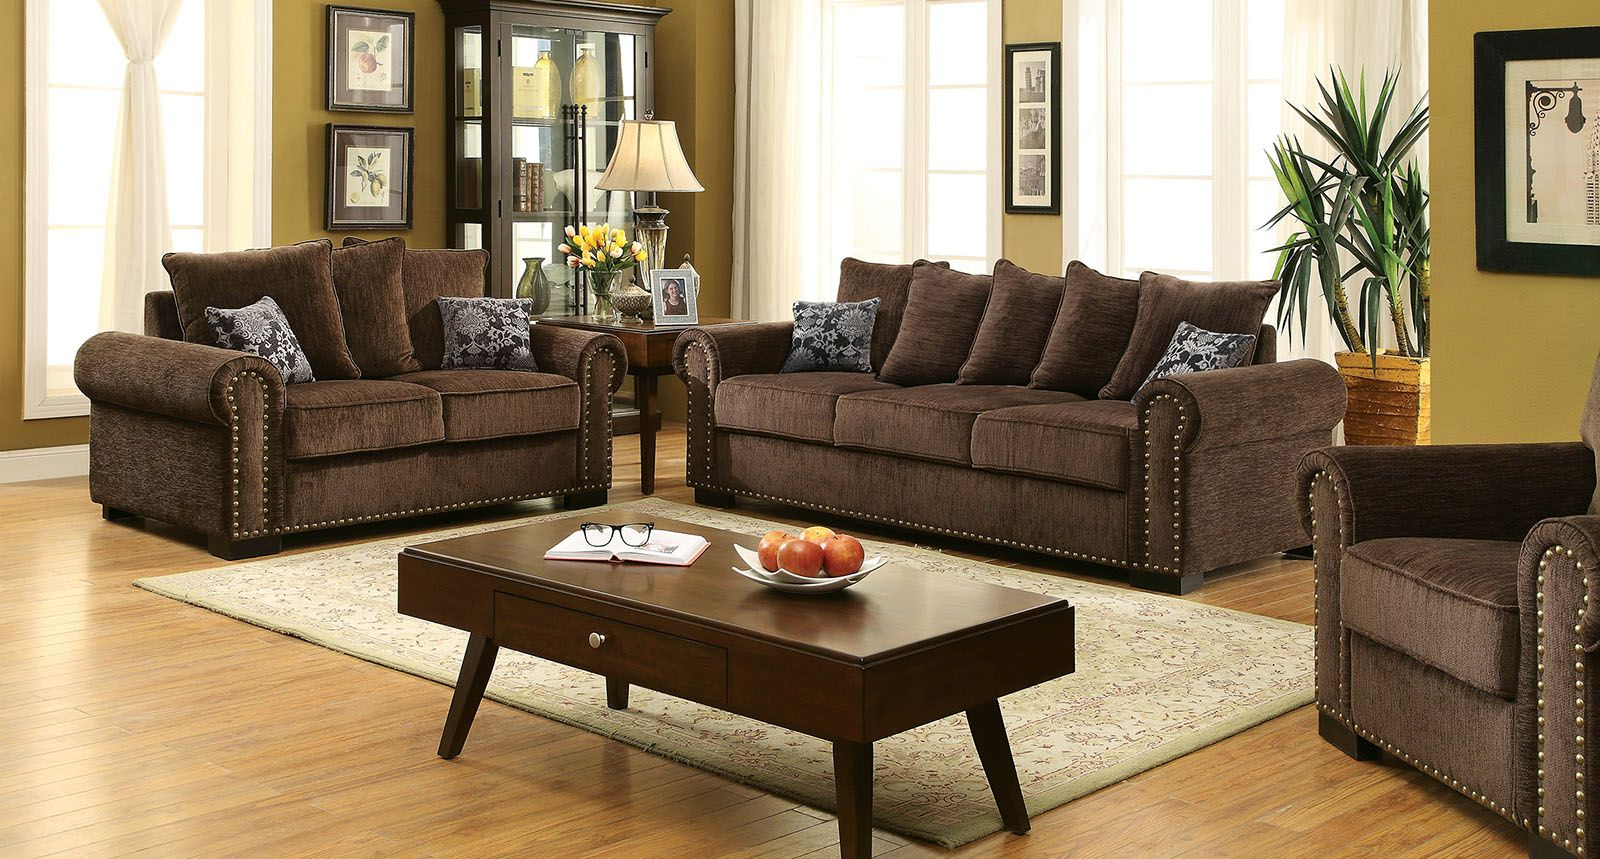 Newest 2Pc Polyfiber Sectional Sofas With Nailhead Trims Gray Pertaining To Rydel Transitional Sofa Upholstered In Brown Chenille (View 25 of 25)